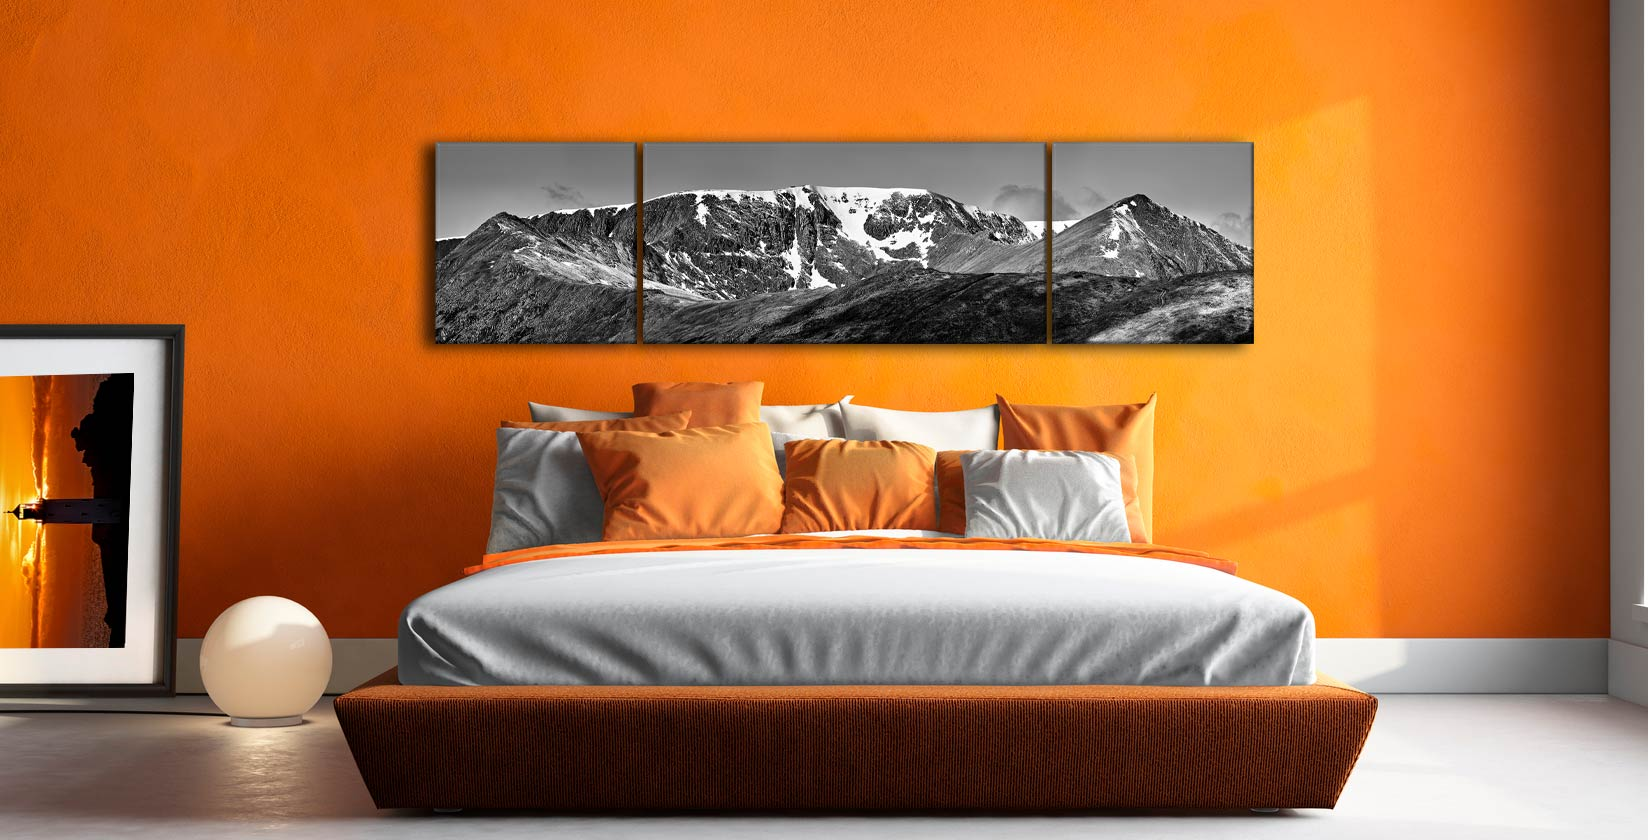 Helvellynn Snow Capped - 3 Panel Wide Centre Canvas on Wall